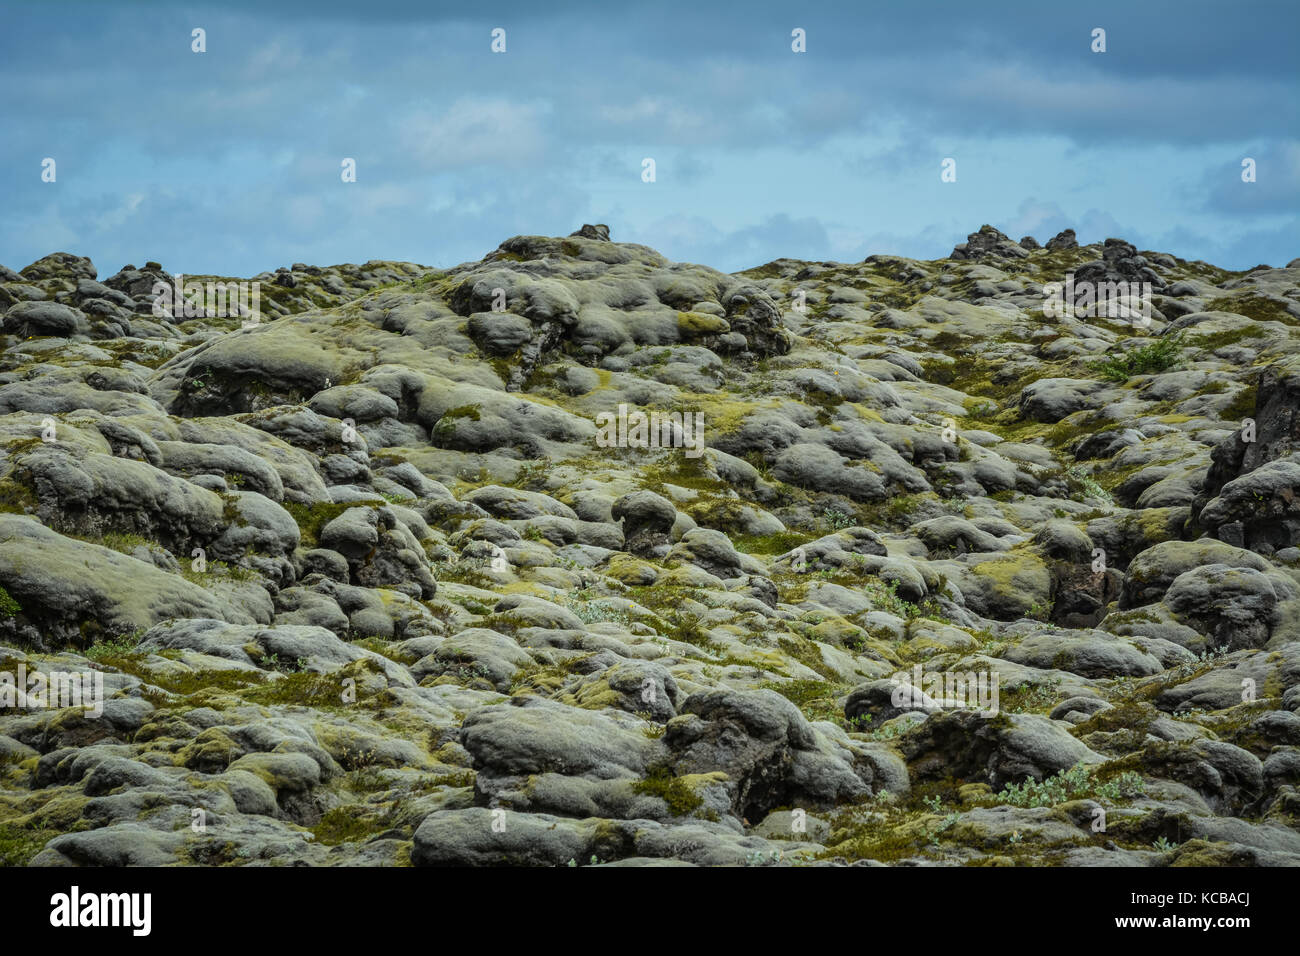 Lava field covered by moss with blue sky in Iceland - Stock Image